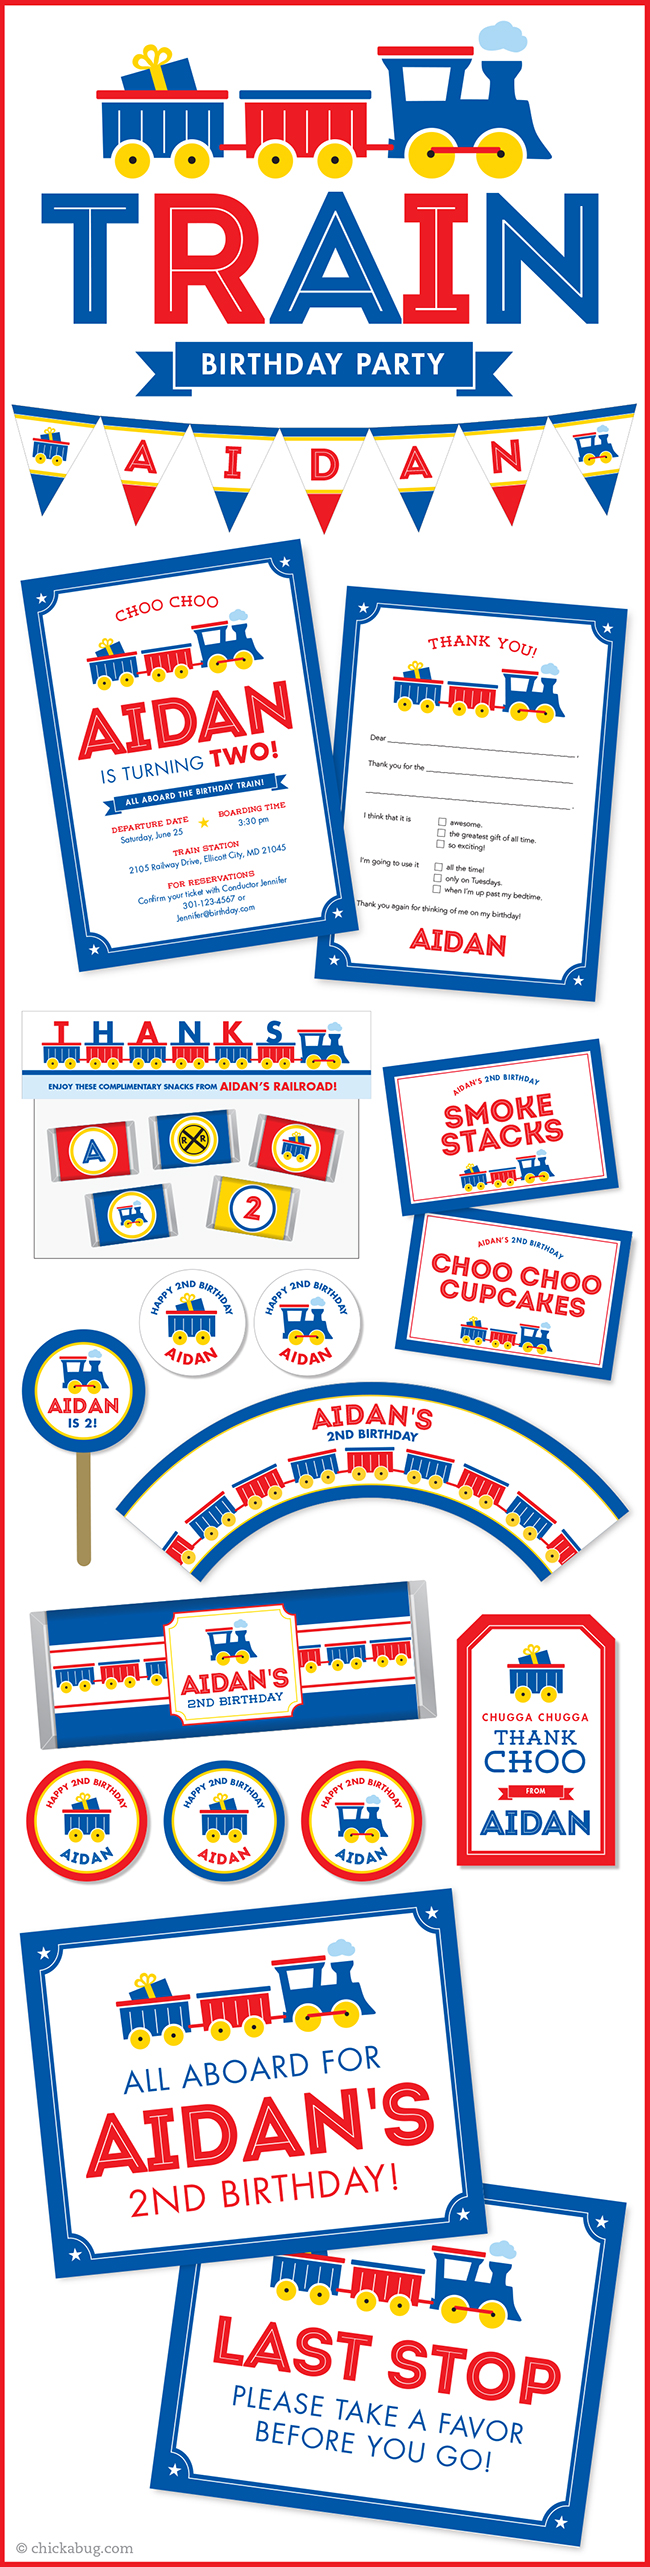 Train theme birthday party paper goods & printables from Chickabug.com